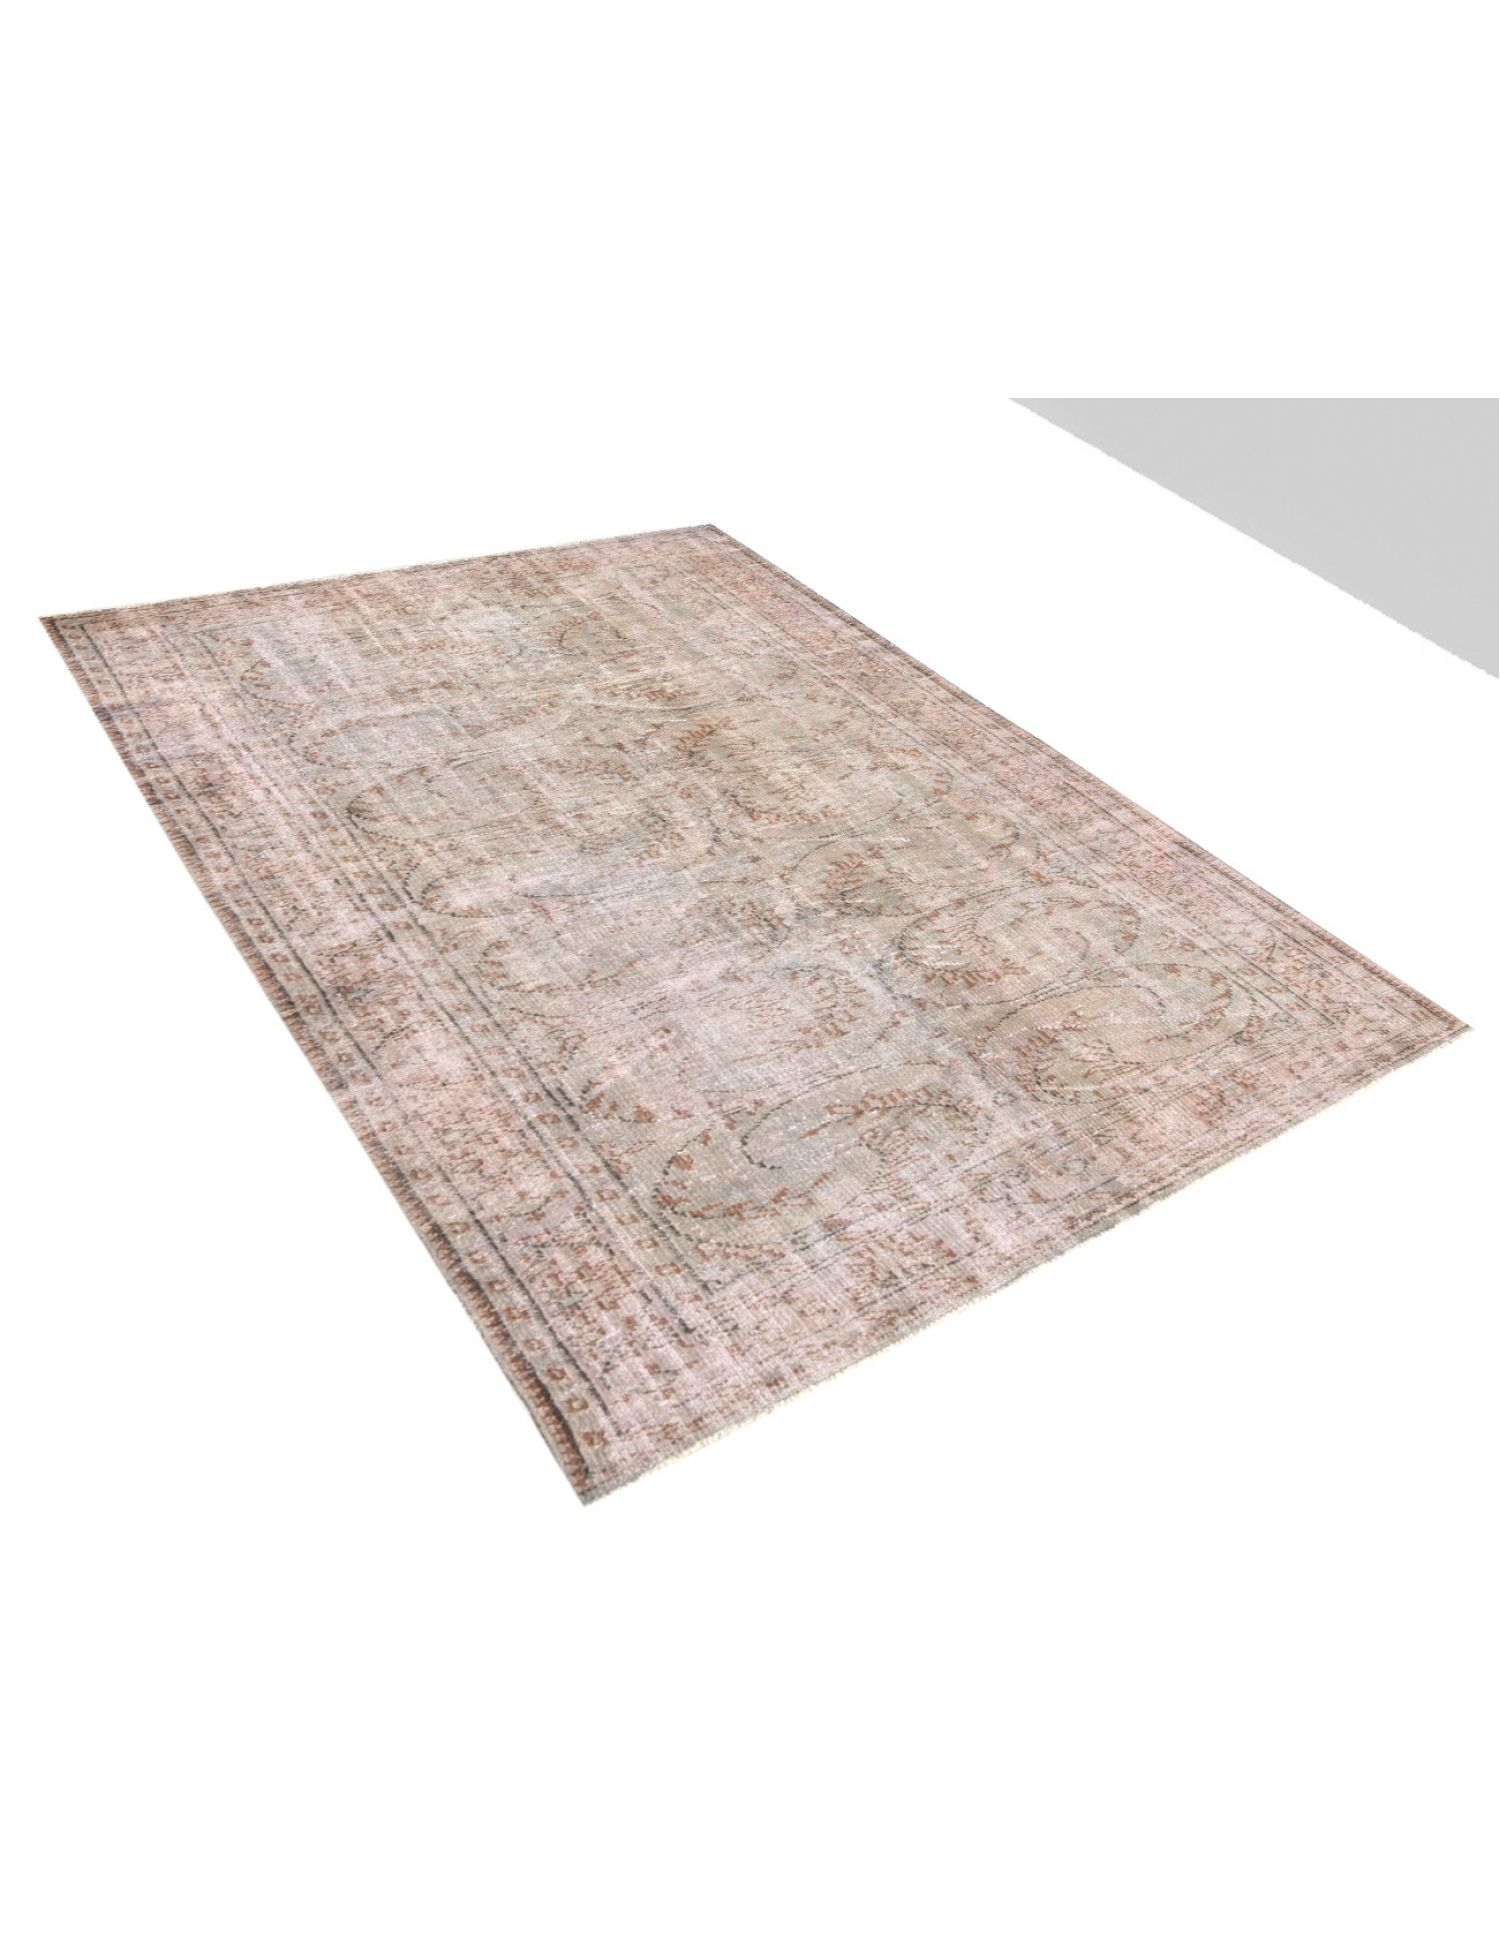 Vintage Carpet  grey <br/>270 x 162 cm